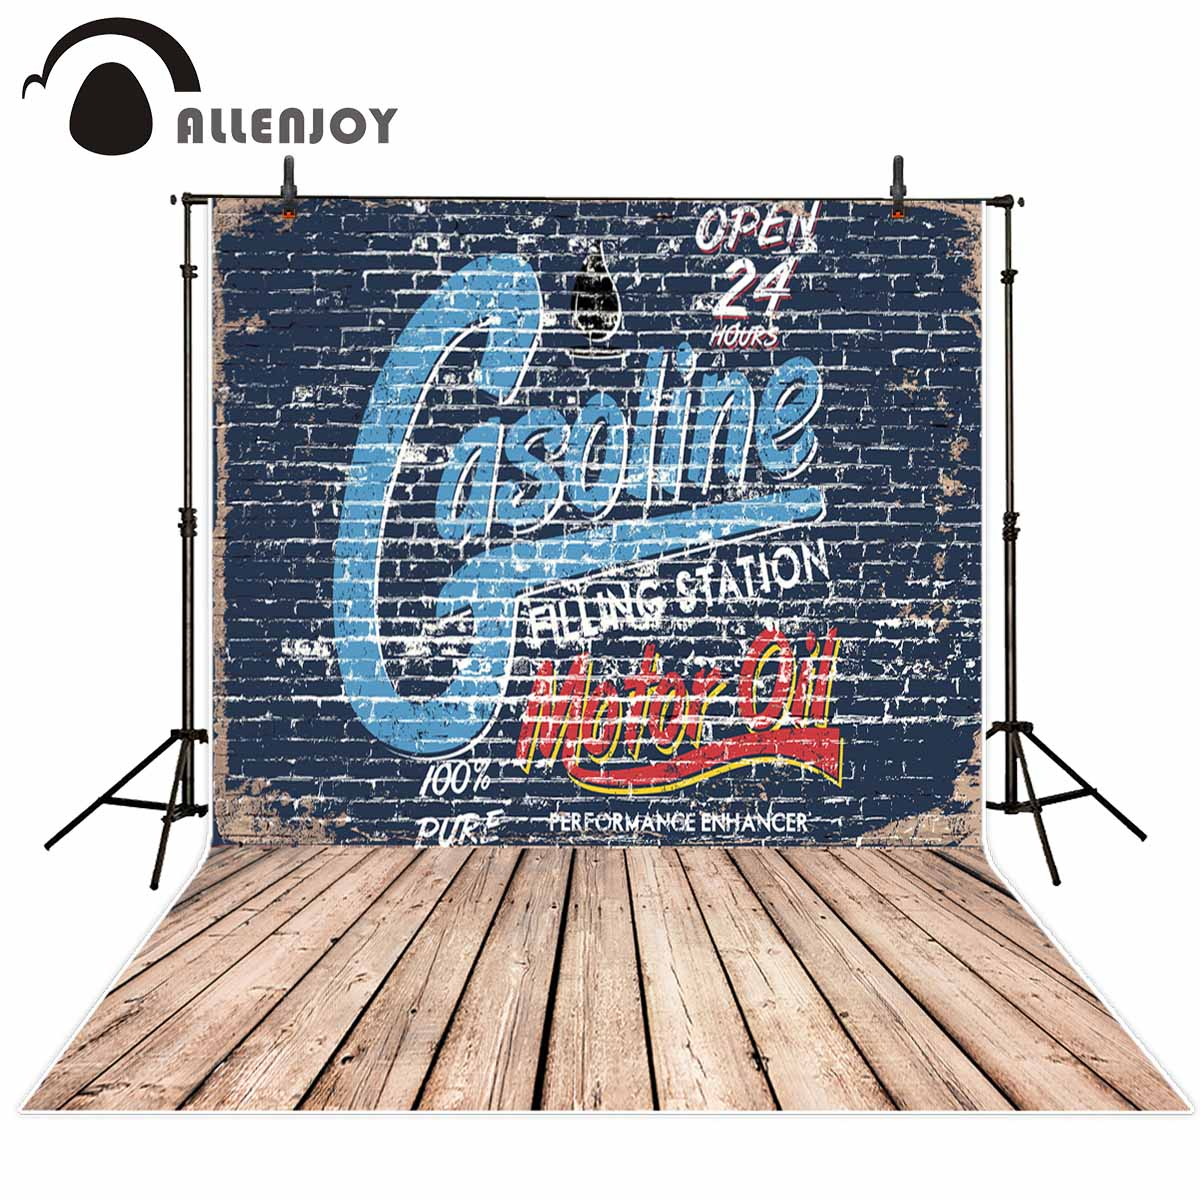 Allenjoy photography background store blue Graffiti wall theme backdrop Cool text pattern Wood floor background New Arrivals